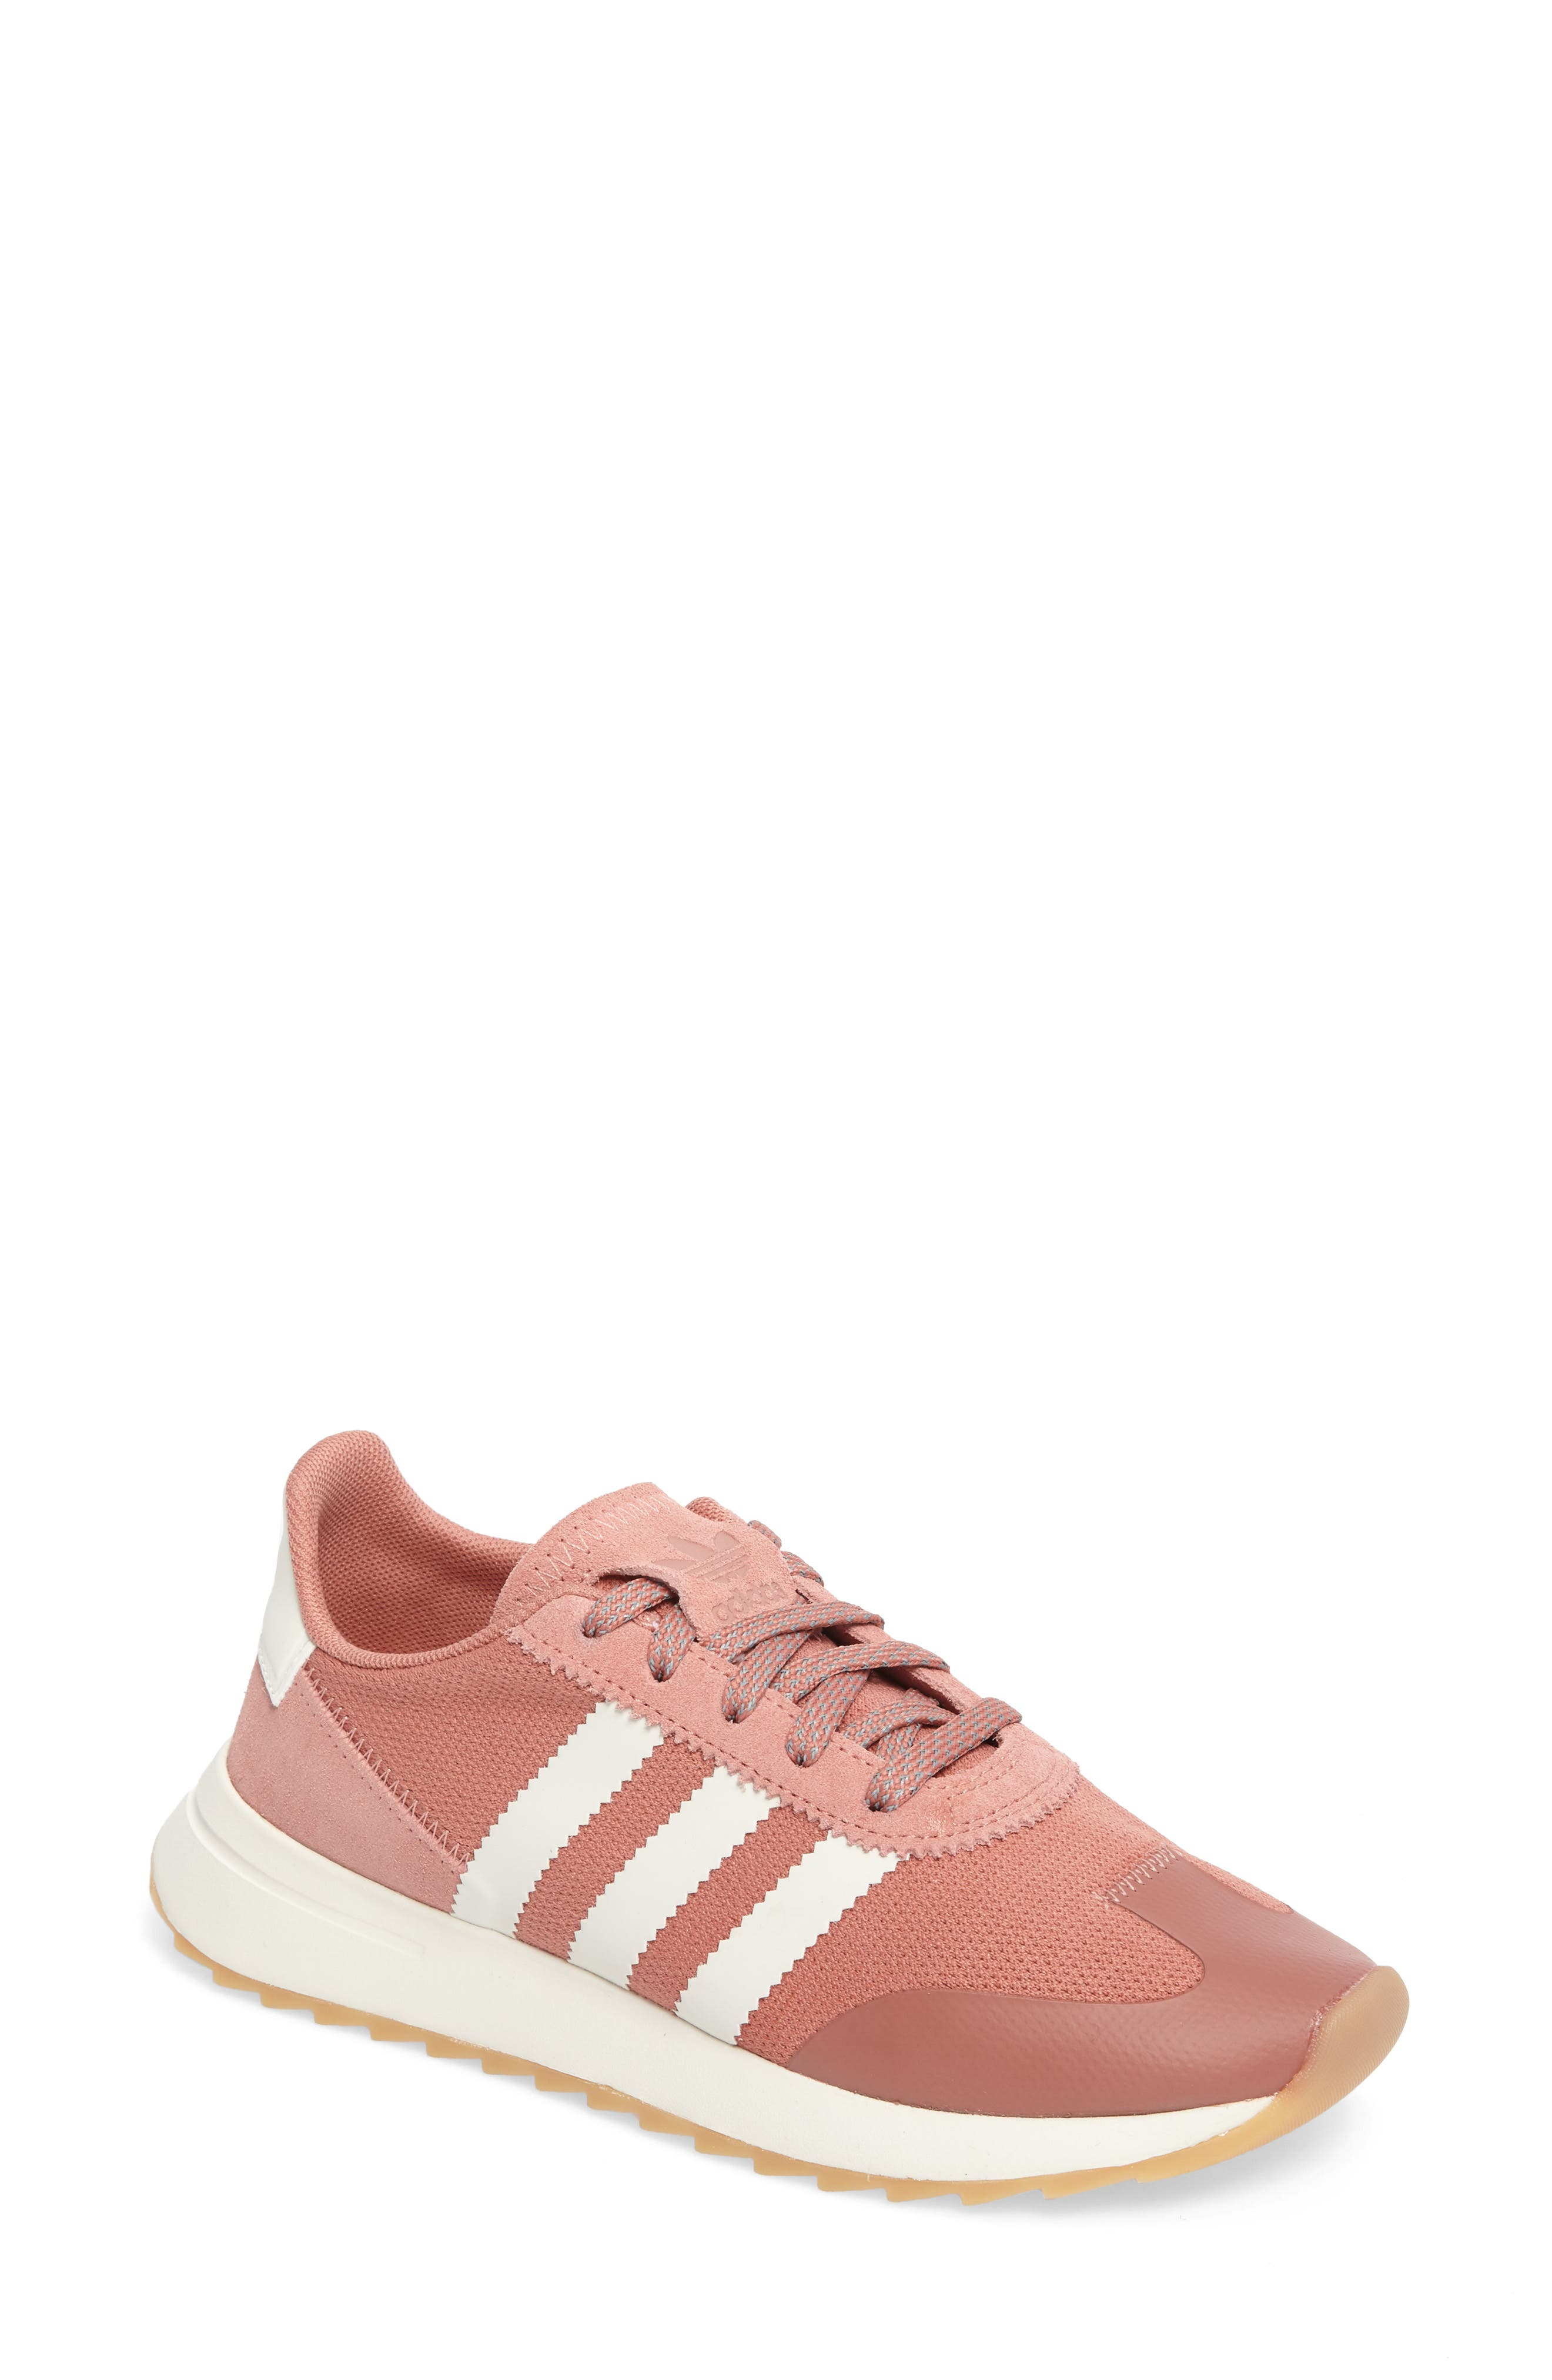 2c7b44136c6f23 Adidas Originals Flashback Sneakers With Leather And Suede In Raw Pink   White